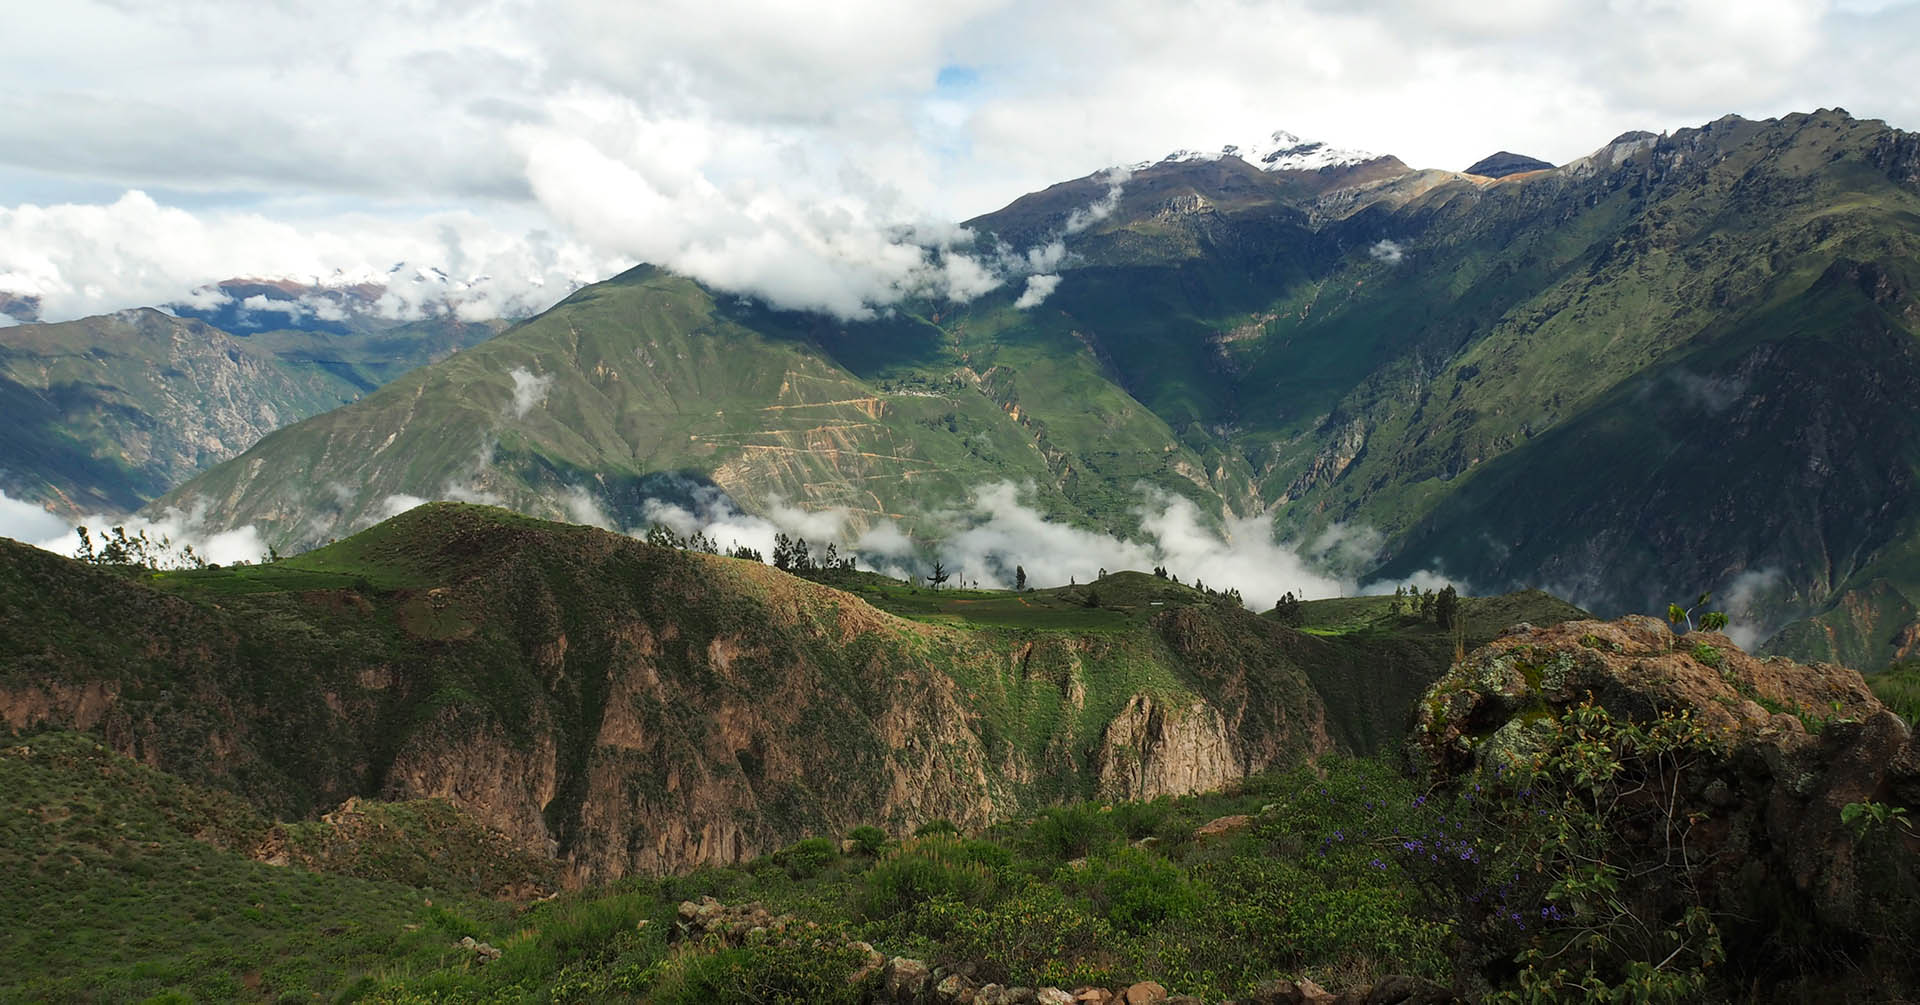 Mountain view at Colca Canyon in Peru - How t visit Colca Canyon without a tour guide